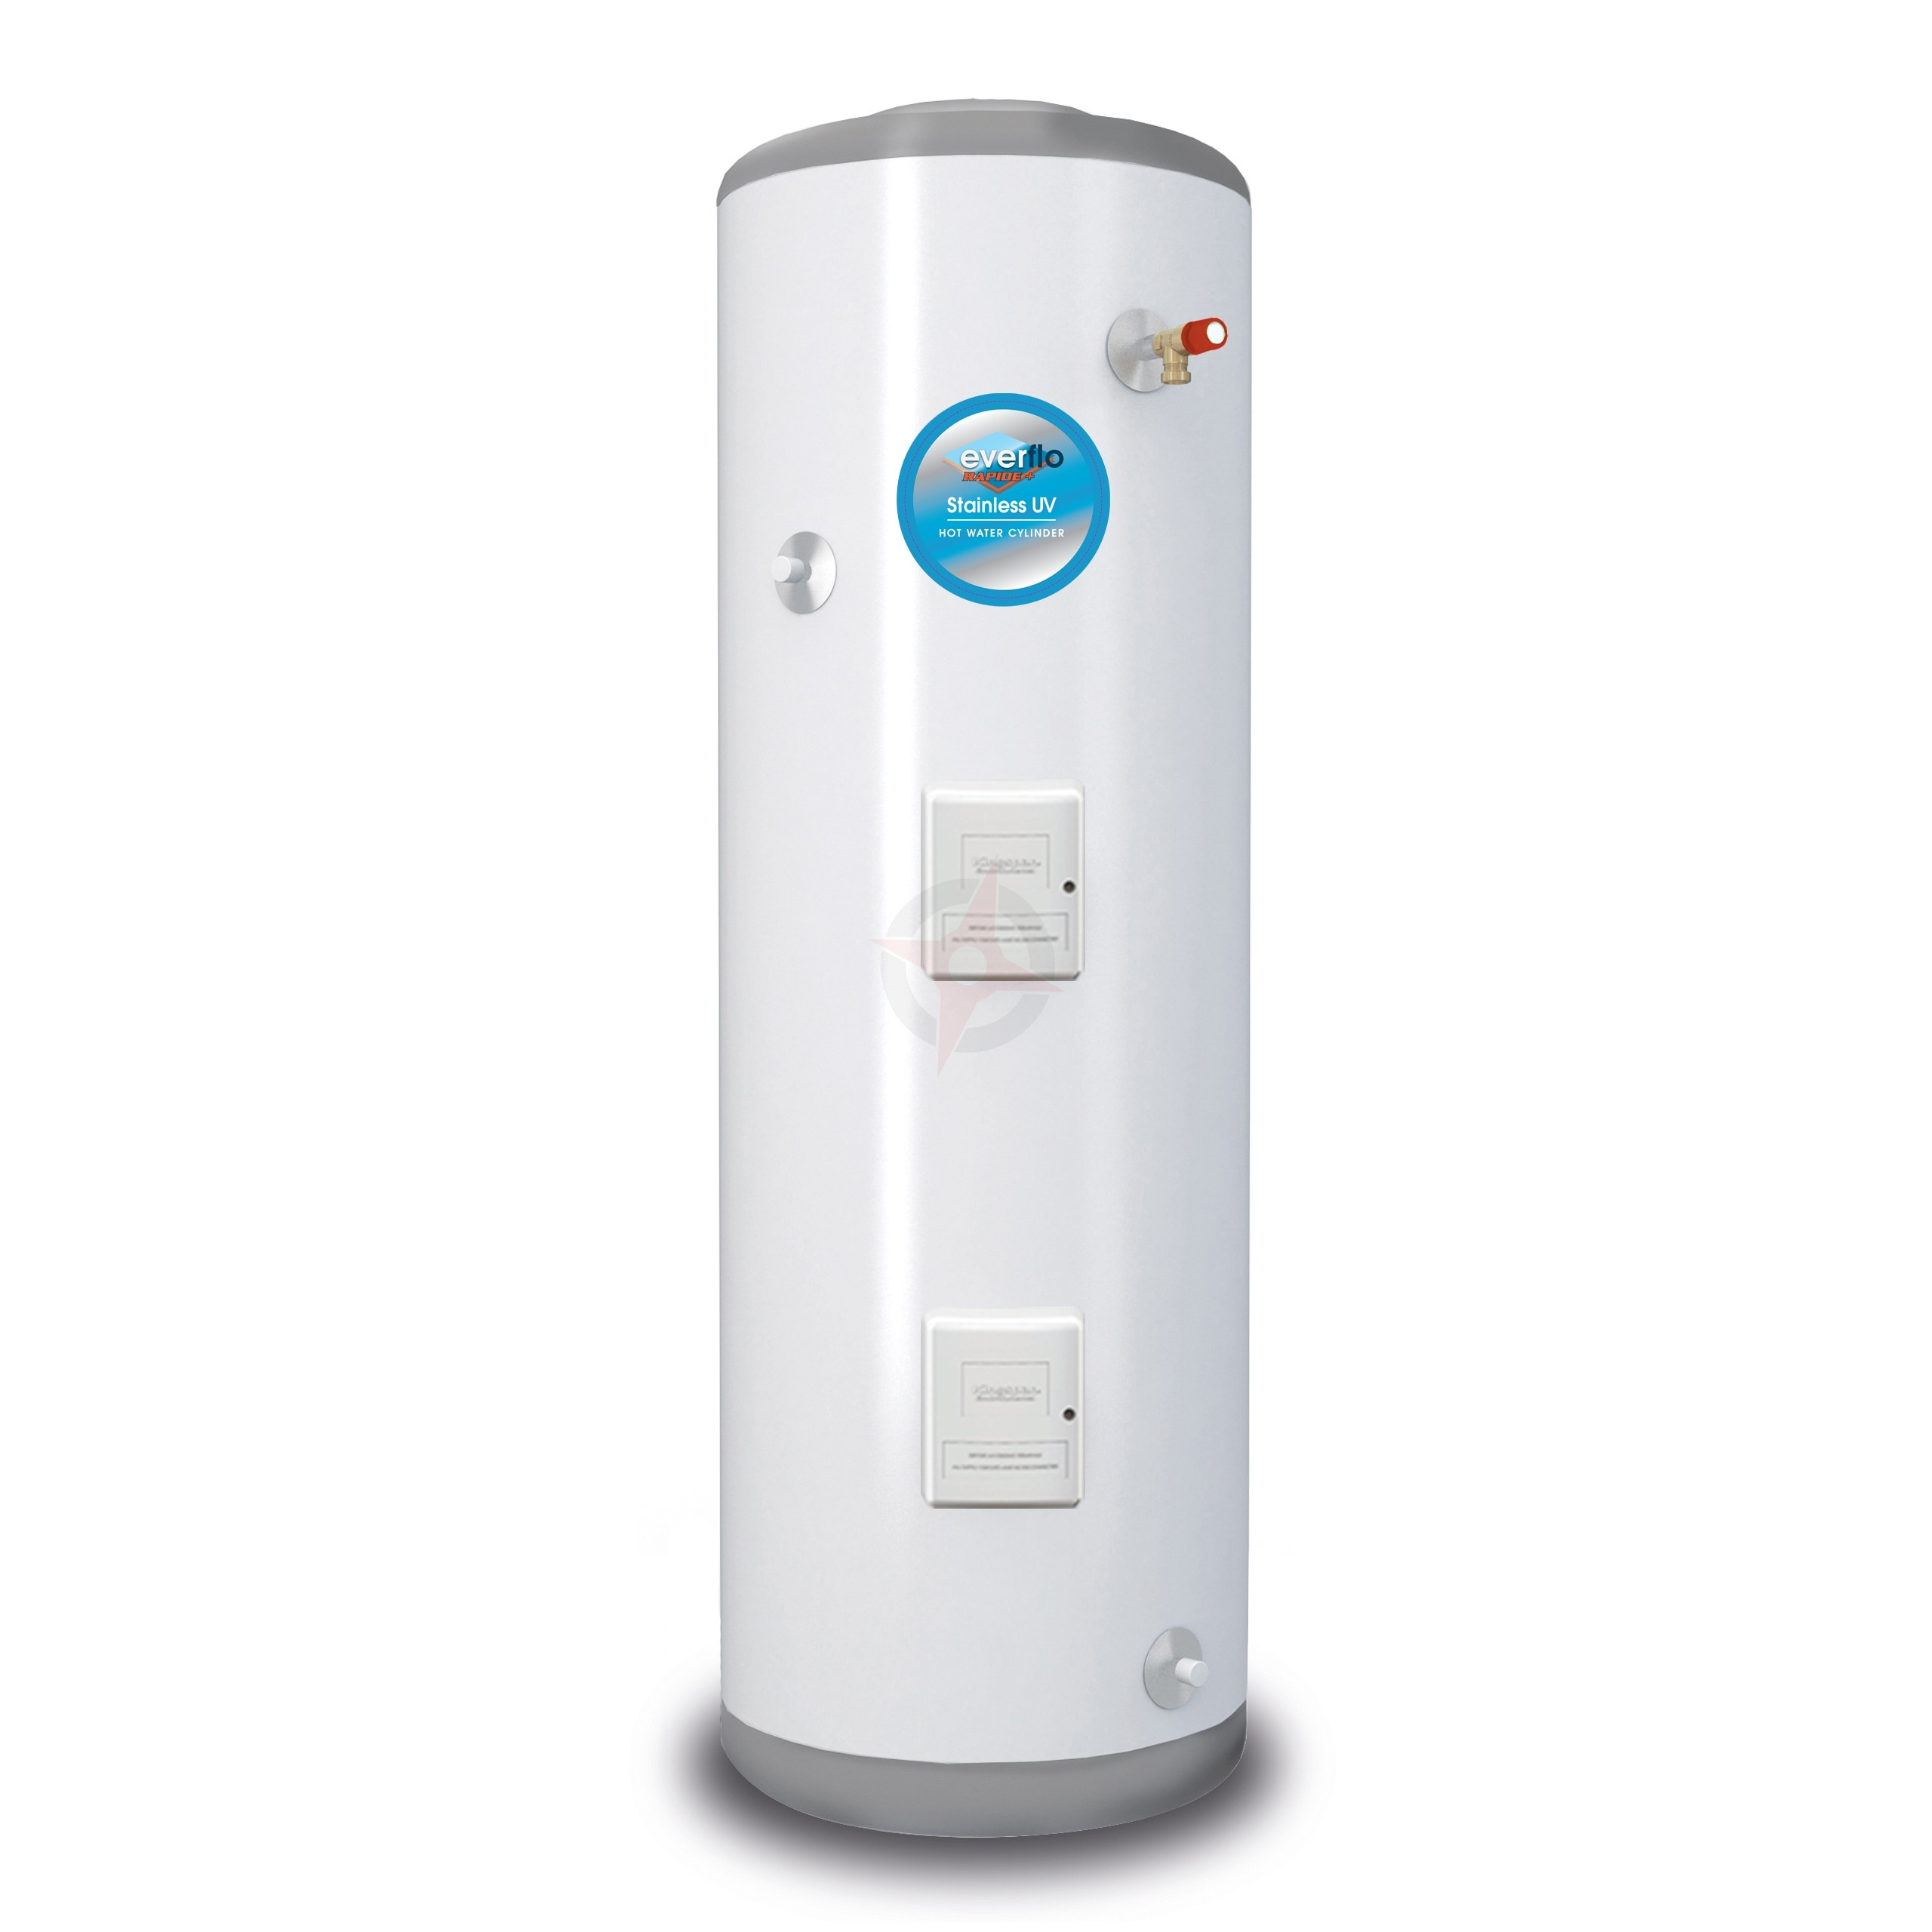 everflo Rapide+ 120L Direct Unvented Hot Water Storage Cylinder & Kit